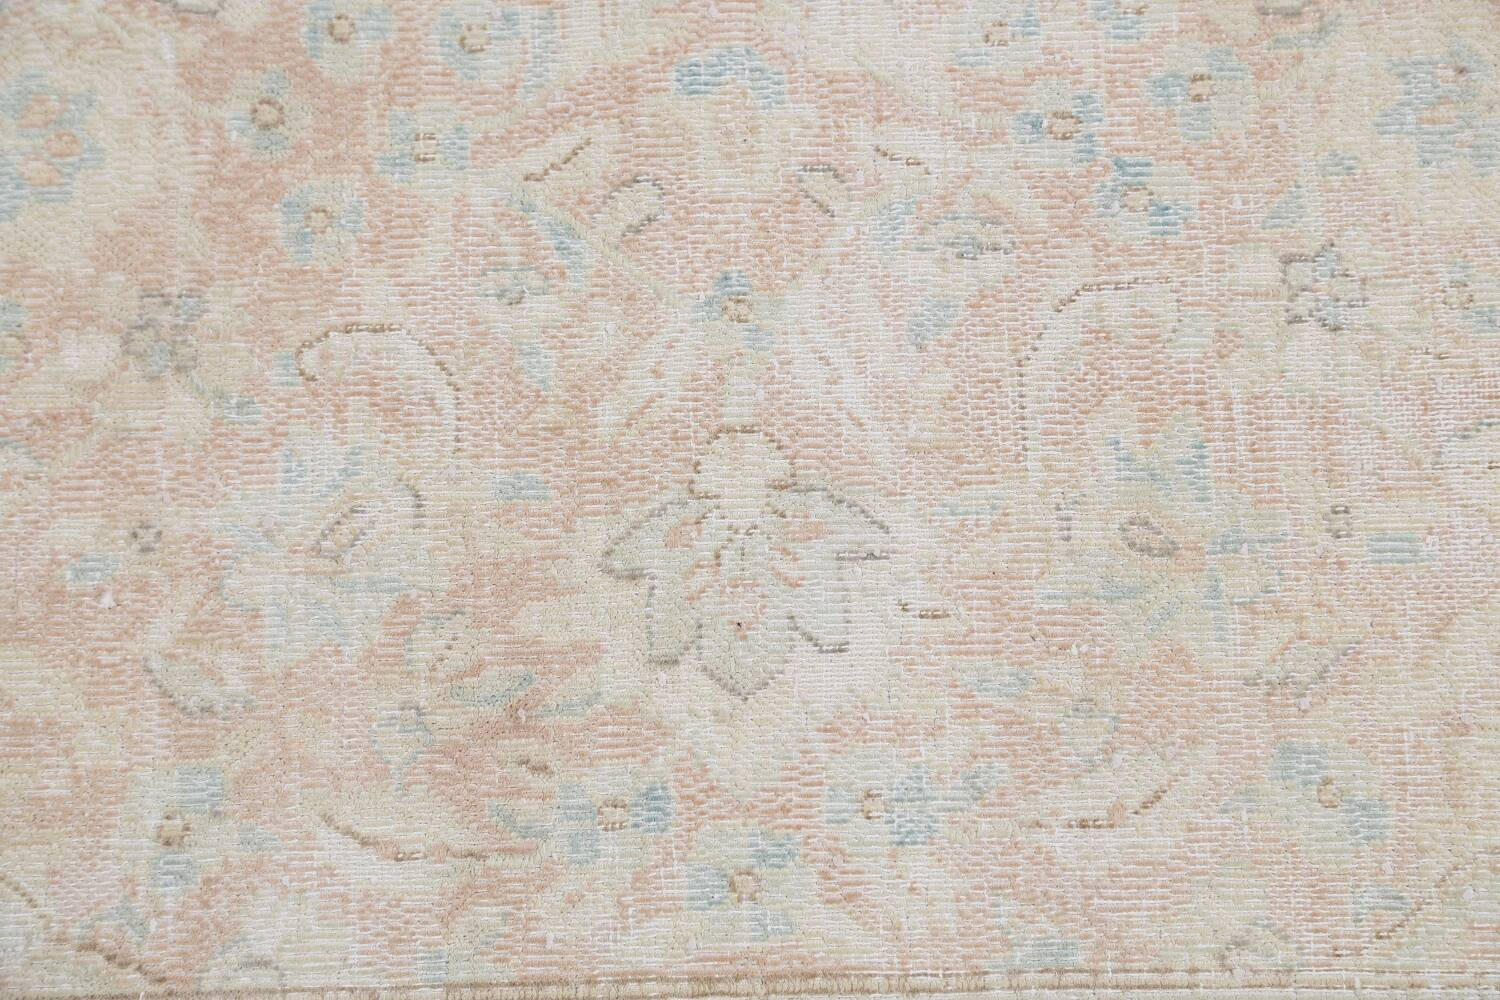 Antique Muted Distressed Kerman Persian Area Rug 10x12 image 10